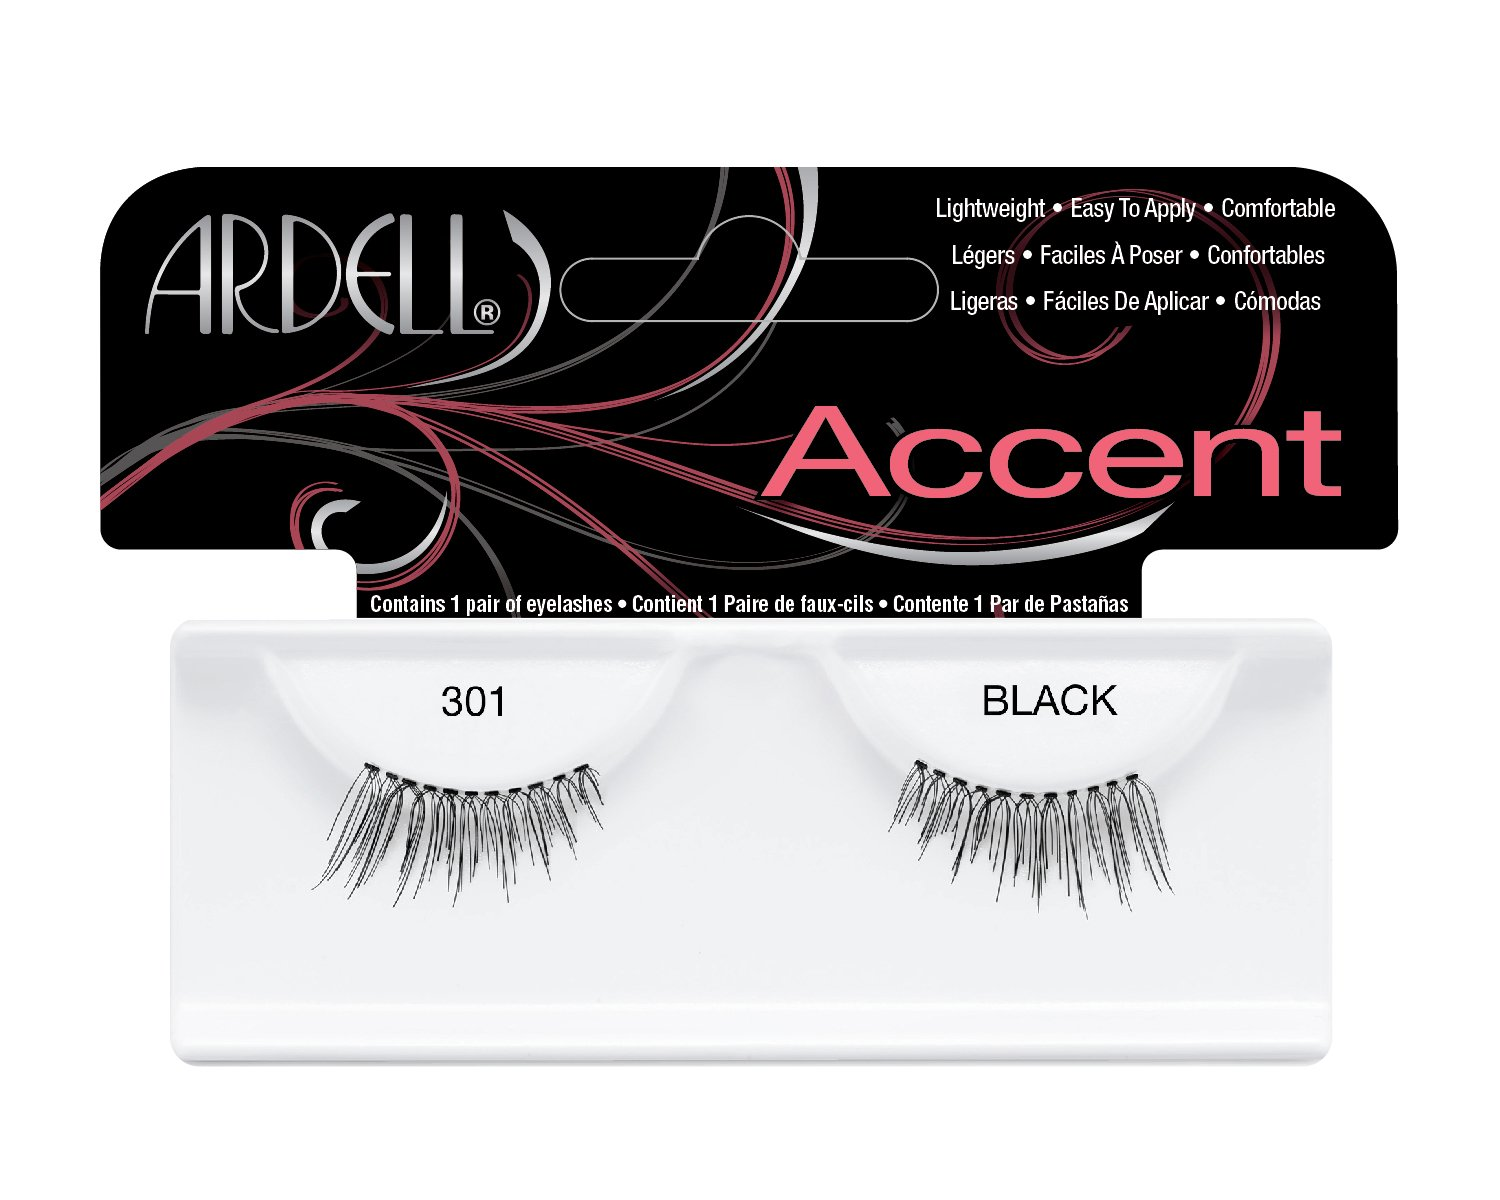 Ardell 301 Accent Lashes 61301